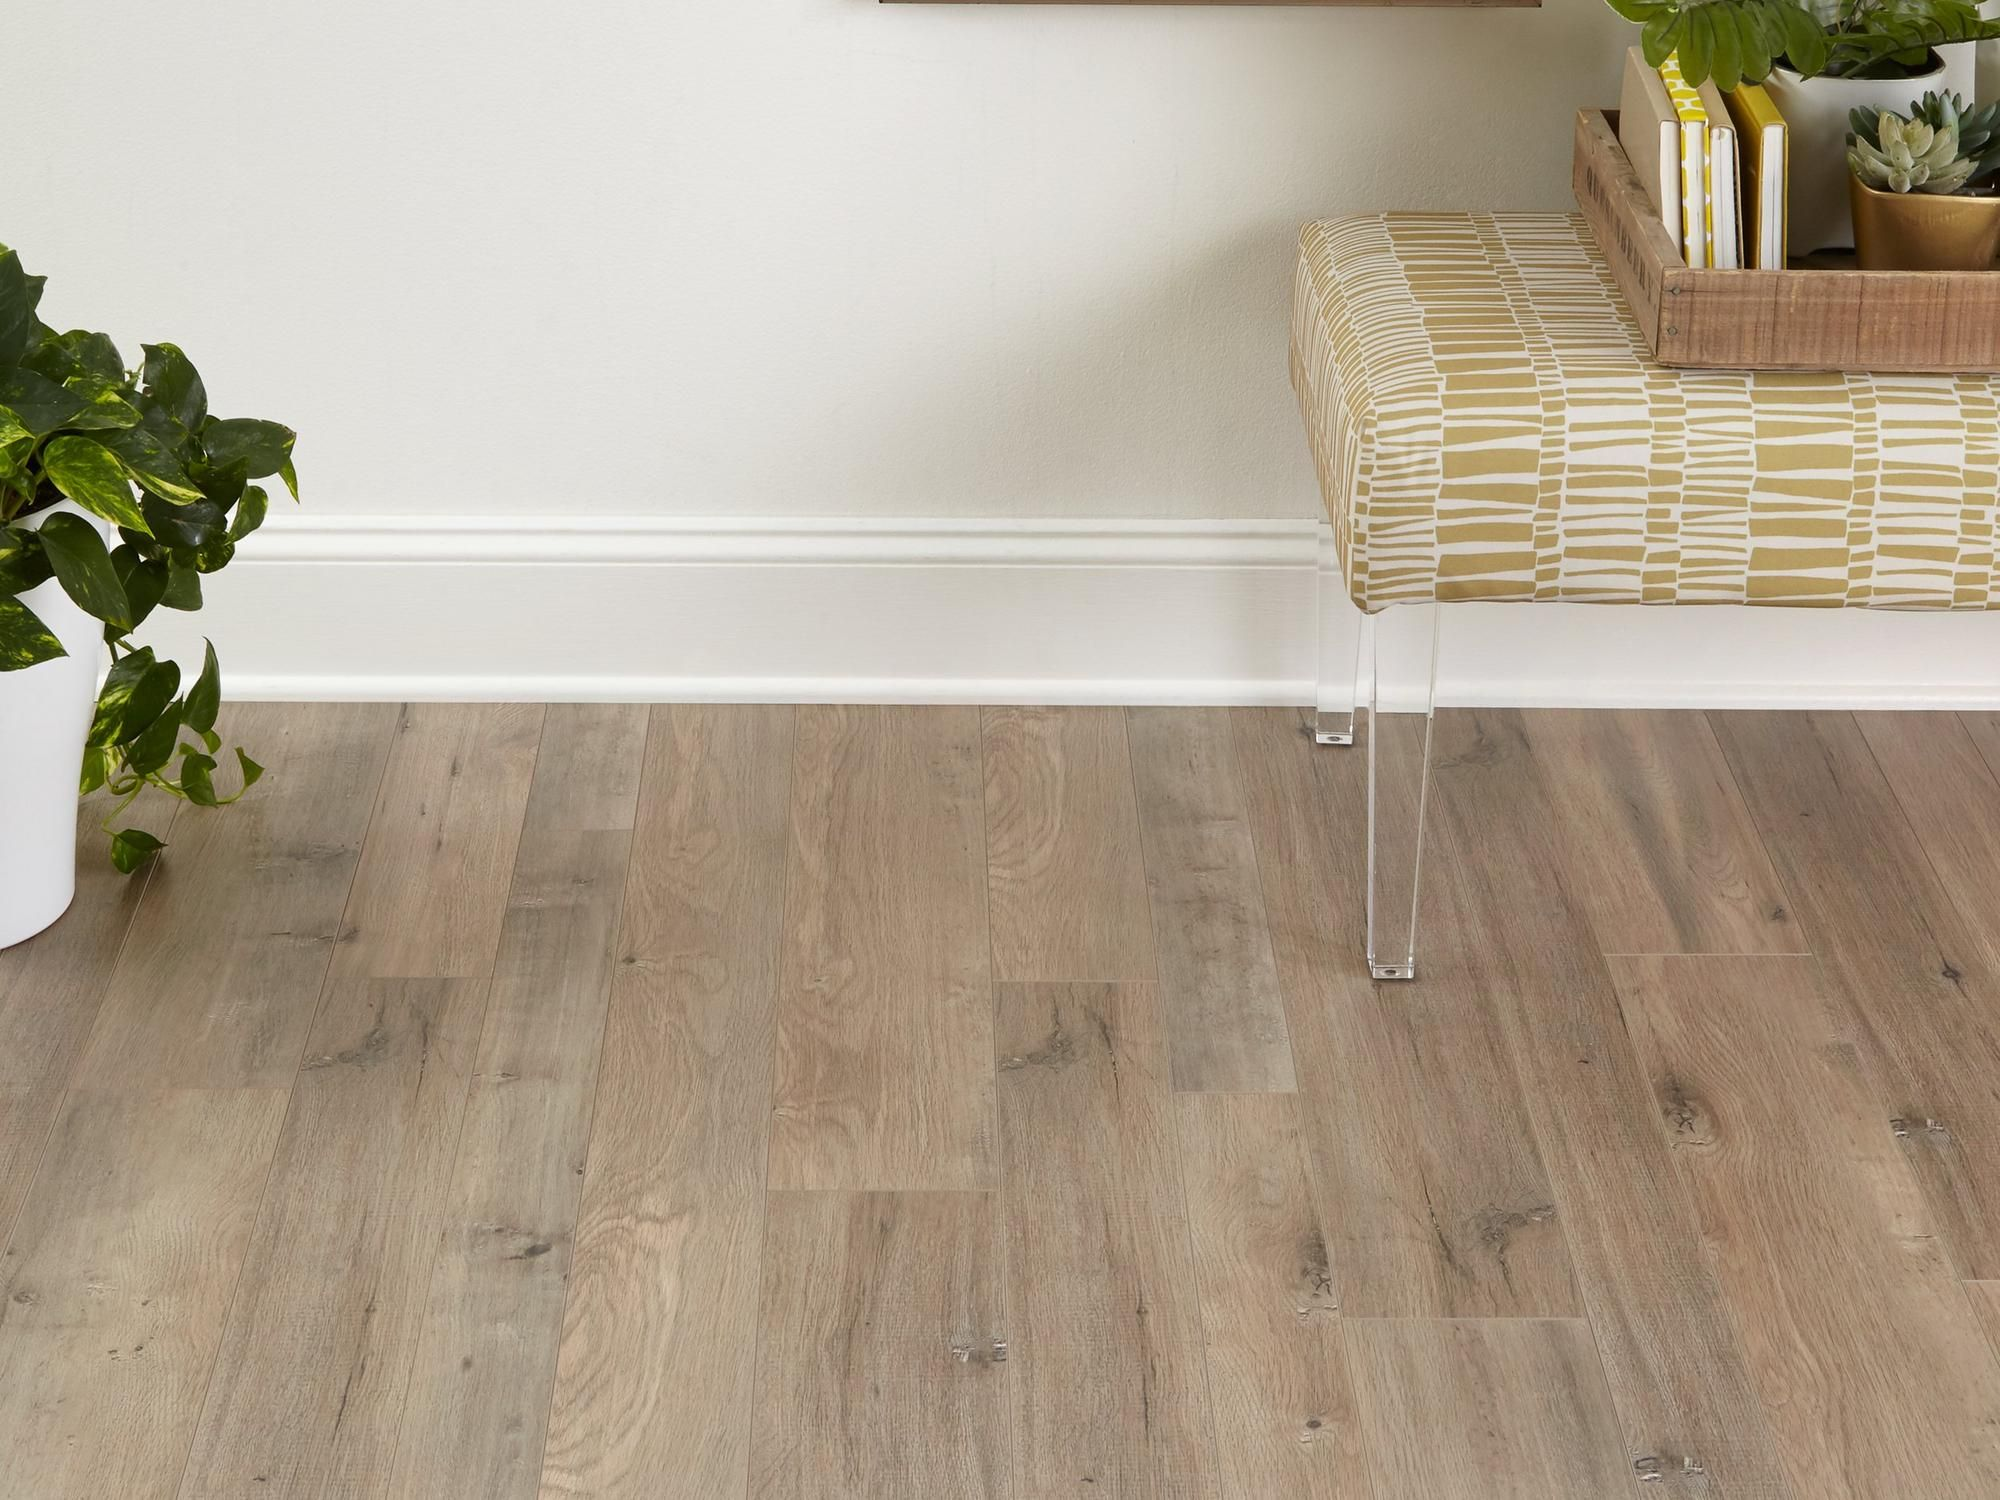 Dove Gray Ash Random Width Laminate In 2020 Brown Laminate Flooring Flooring Wood Laminate Flooring